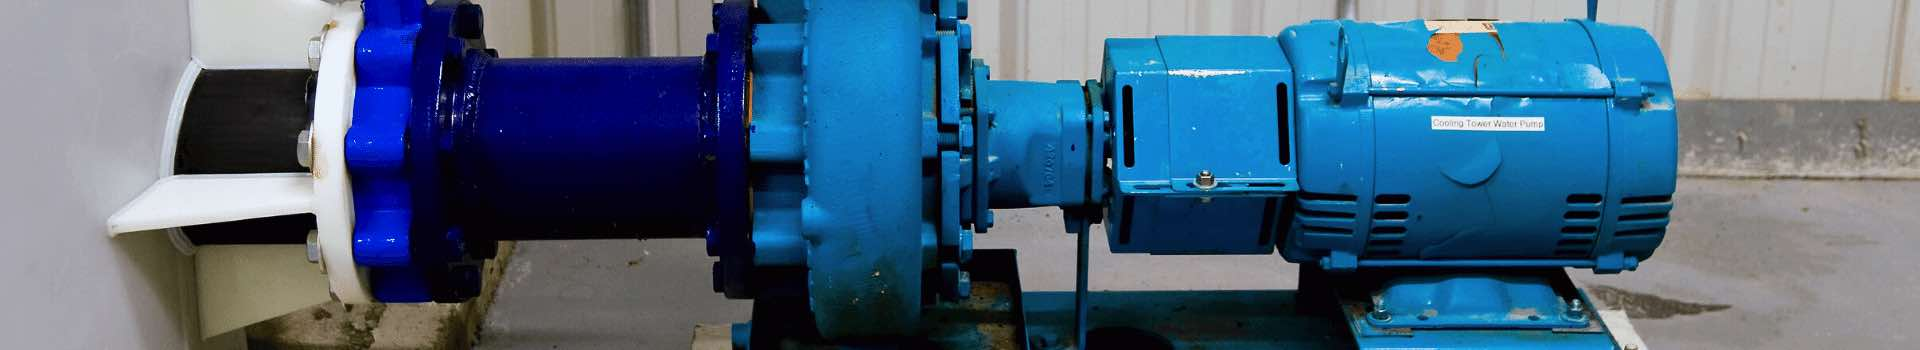 Vibration monitoring for centrifugal pumps increases pump lifespan